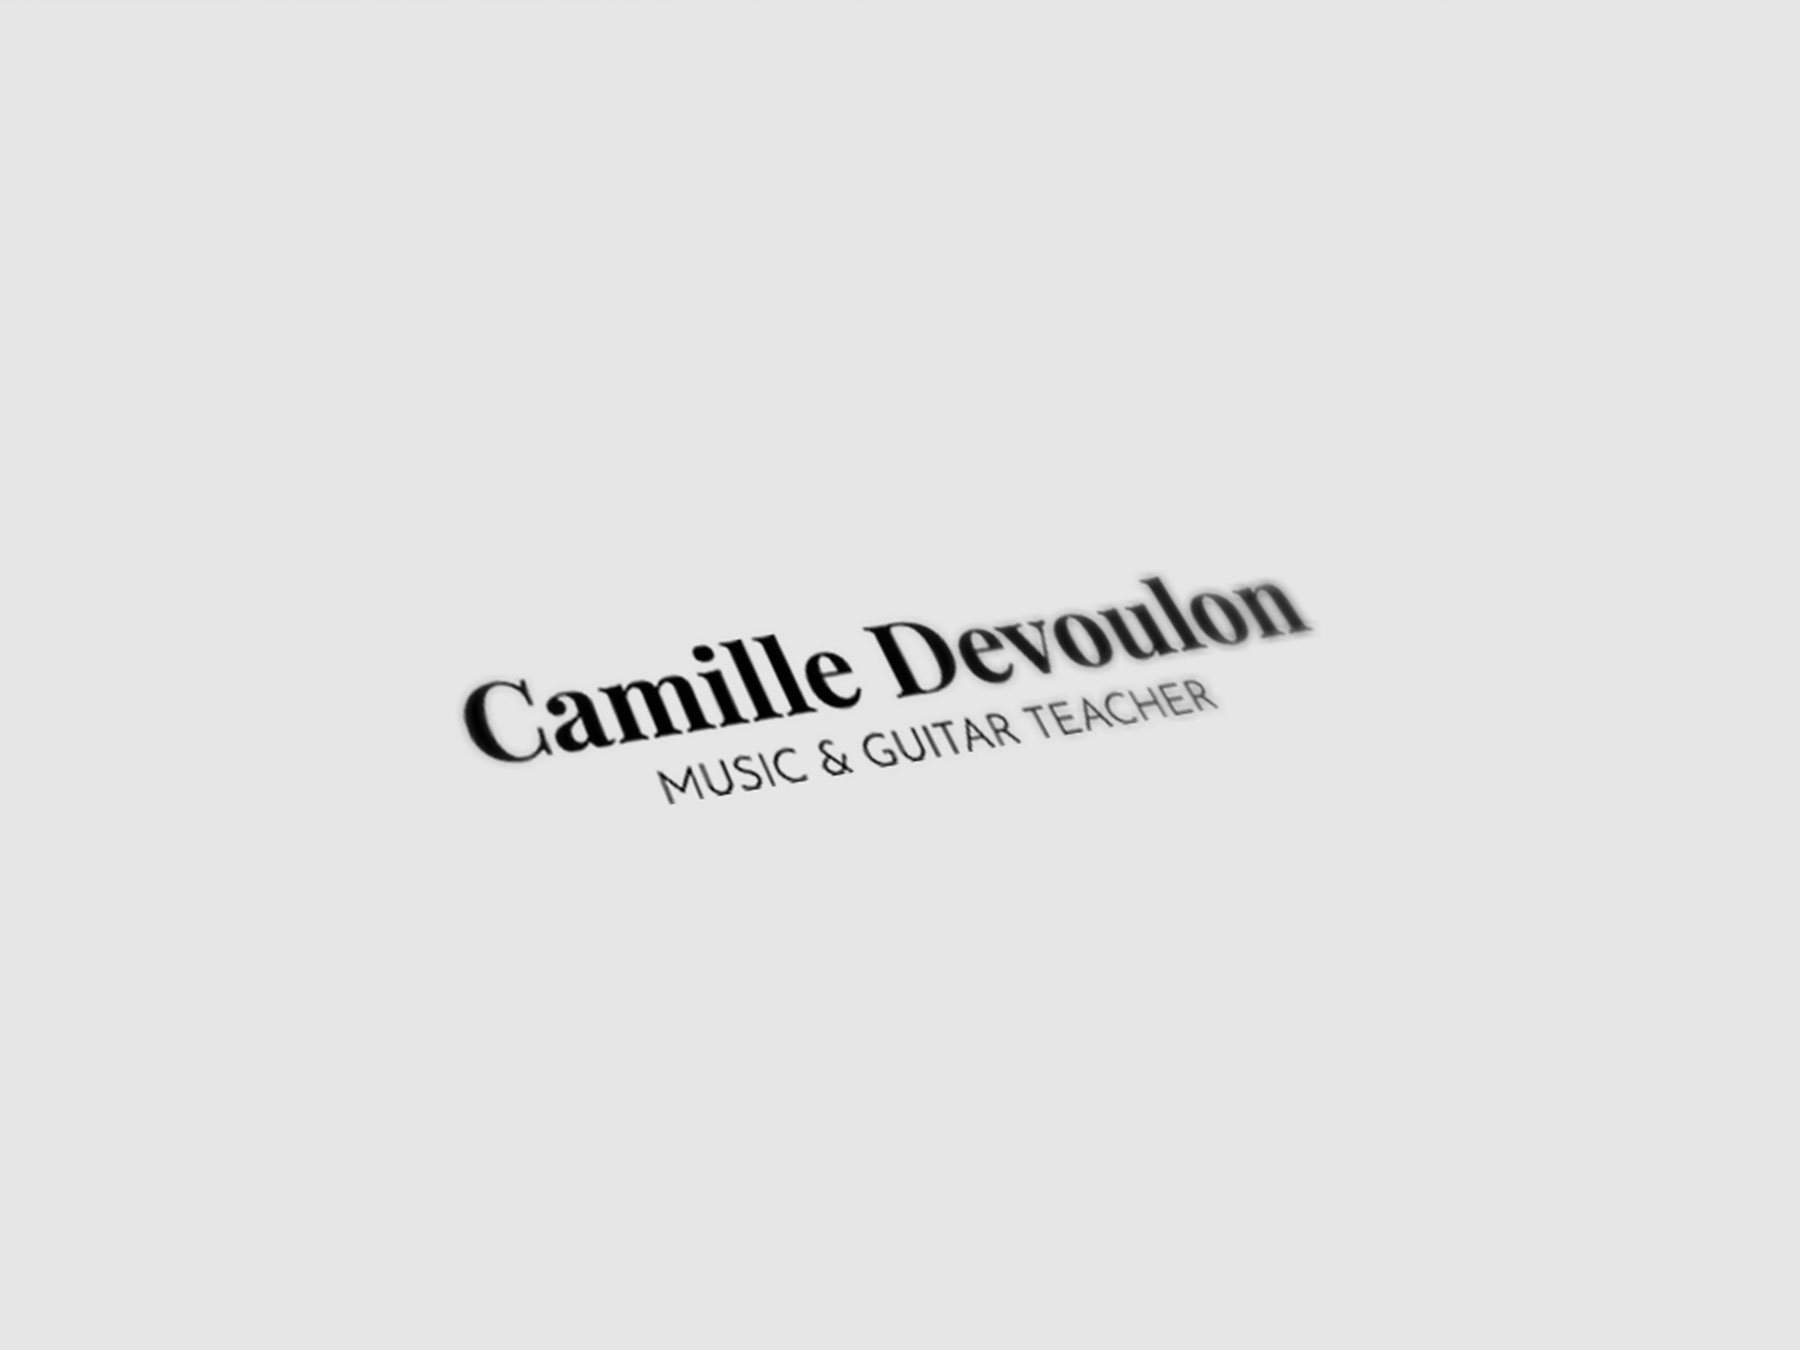 Camille Devoulon